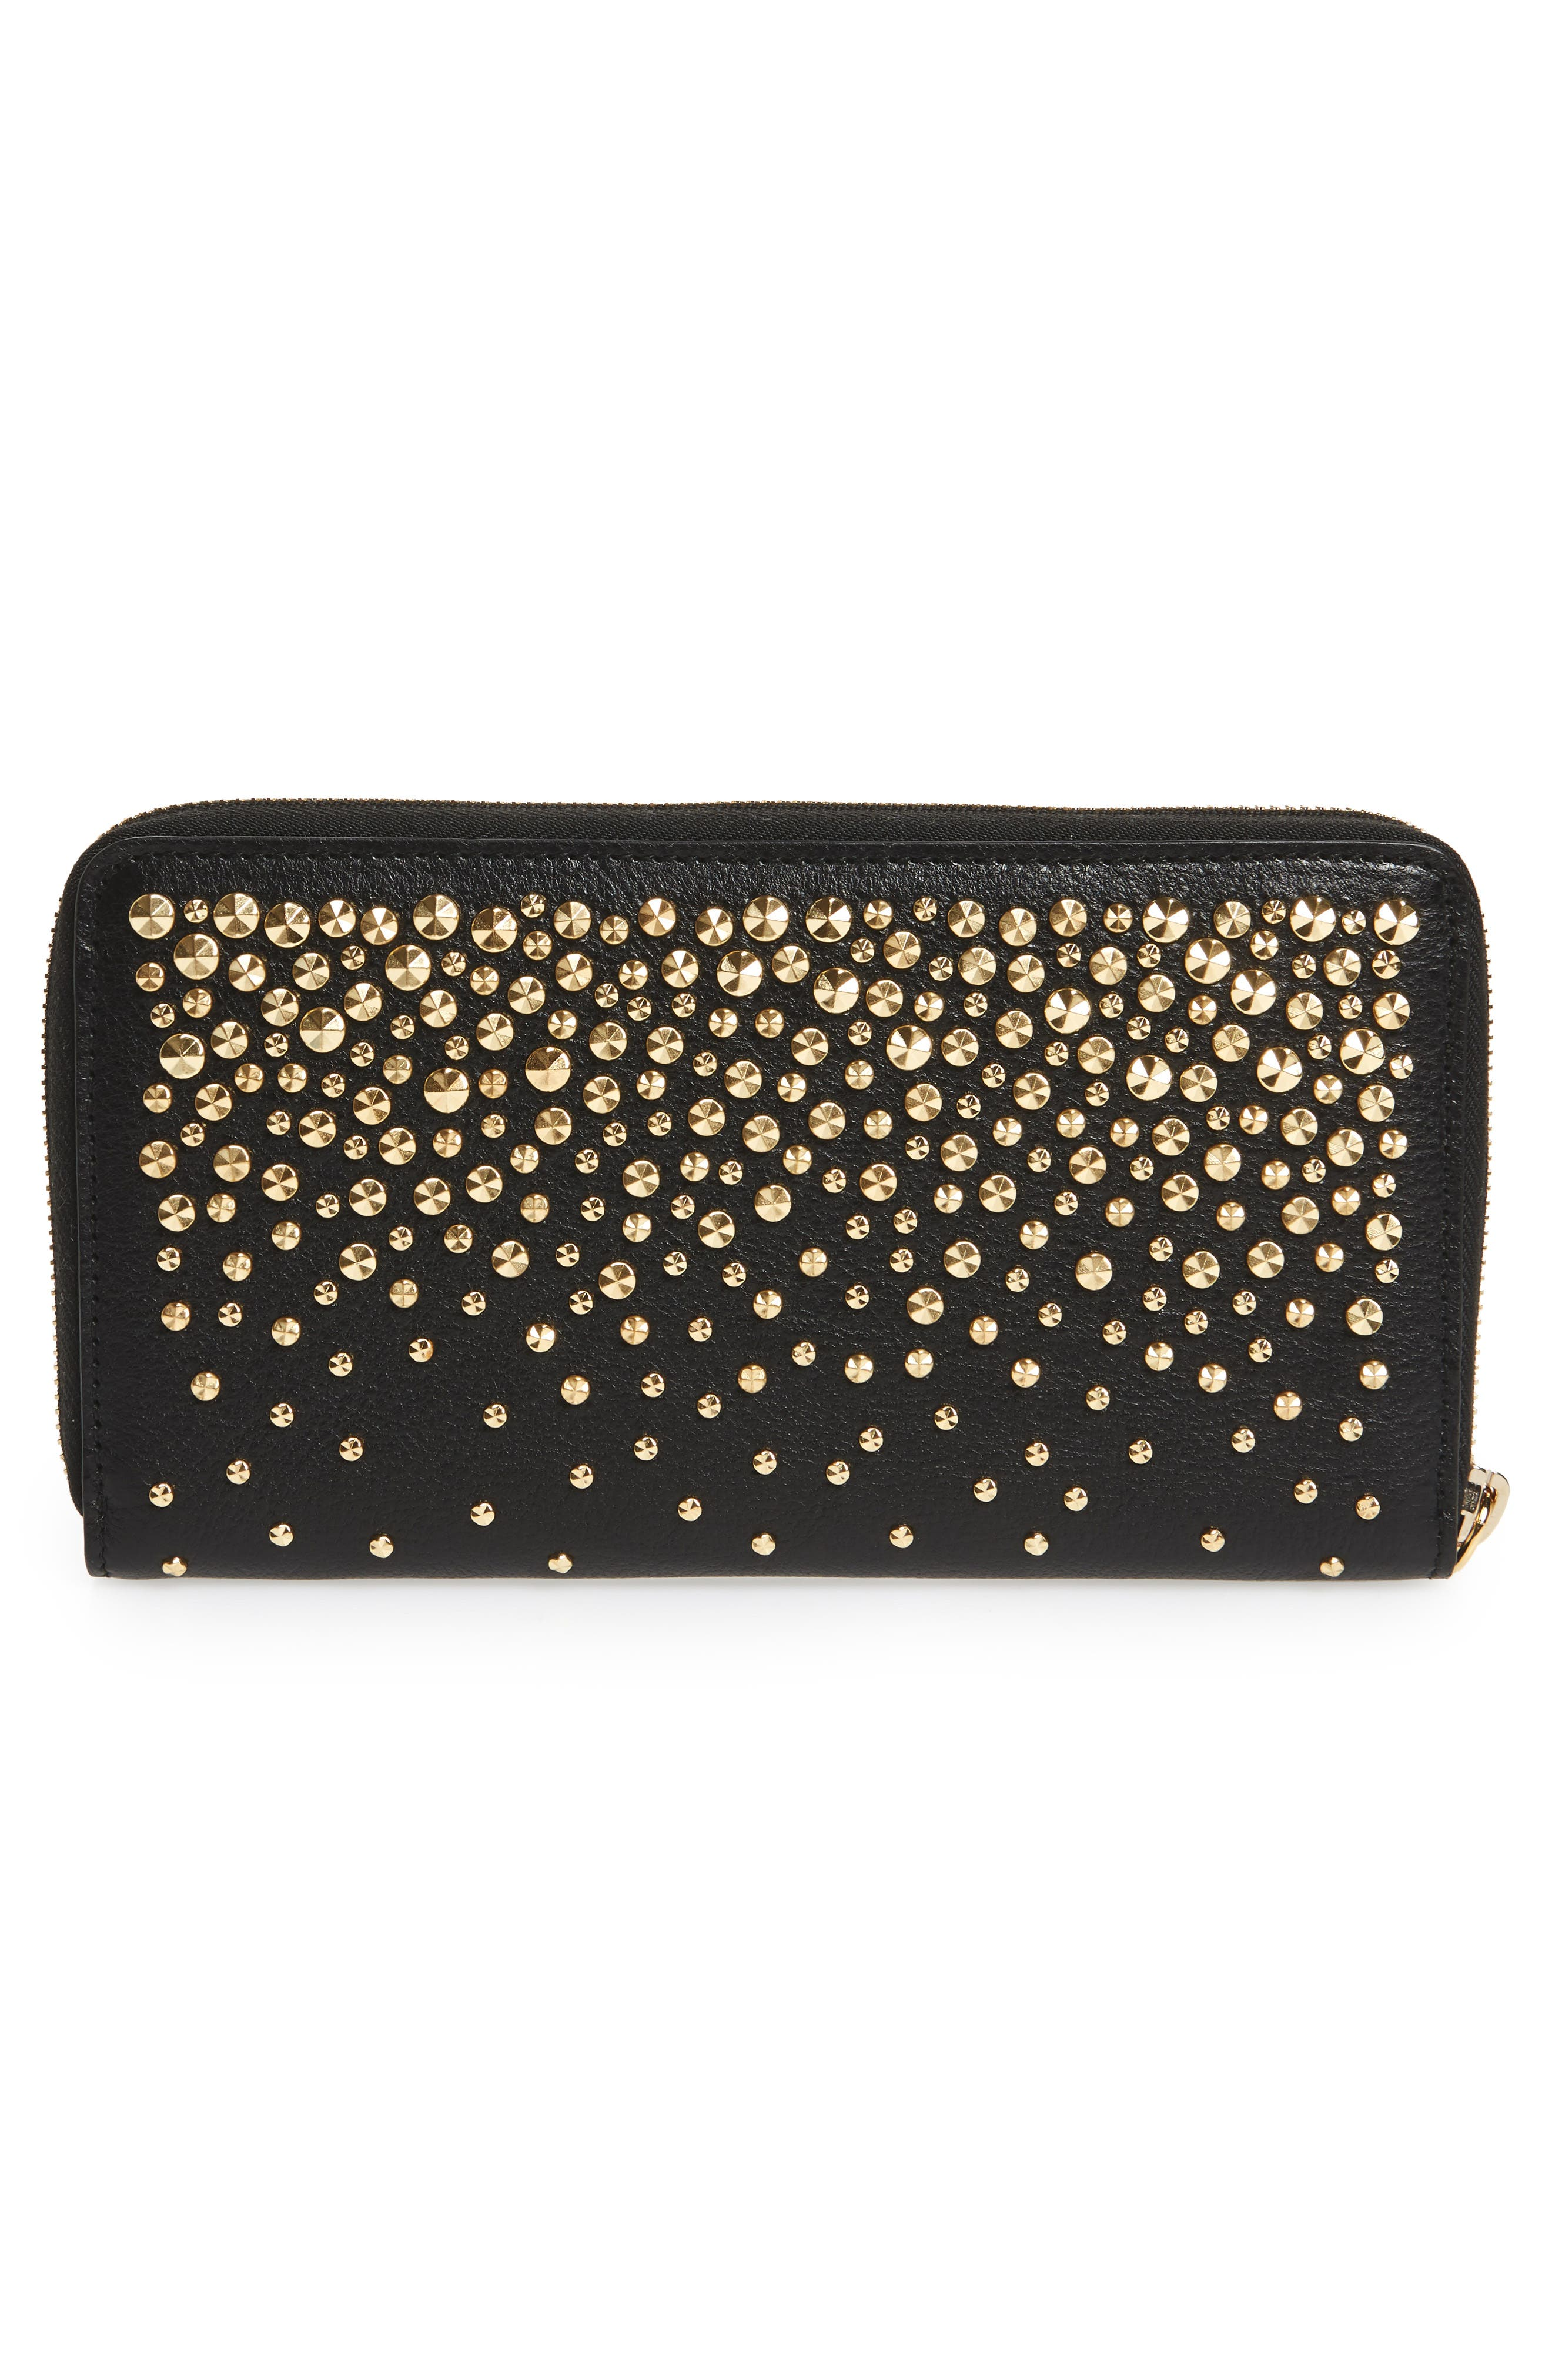 Studded Leather Continental Wallet,                             Alternate thumbnail 4, color,                             Black